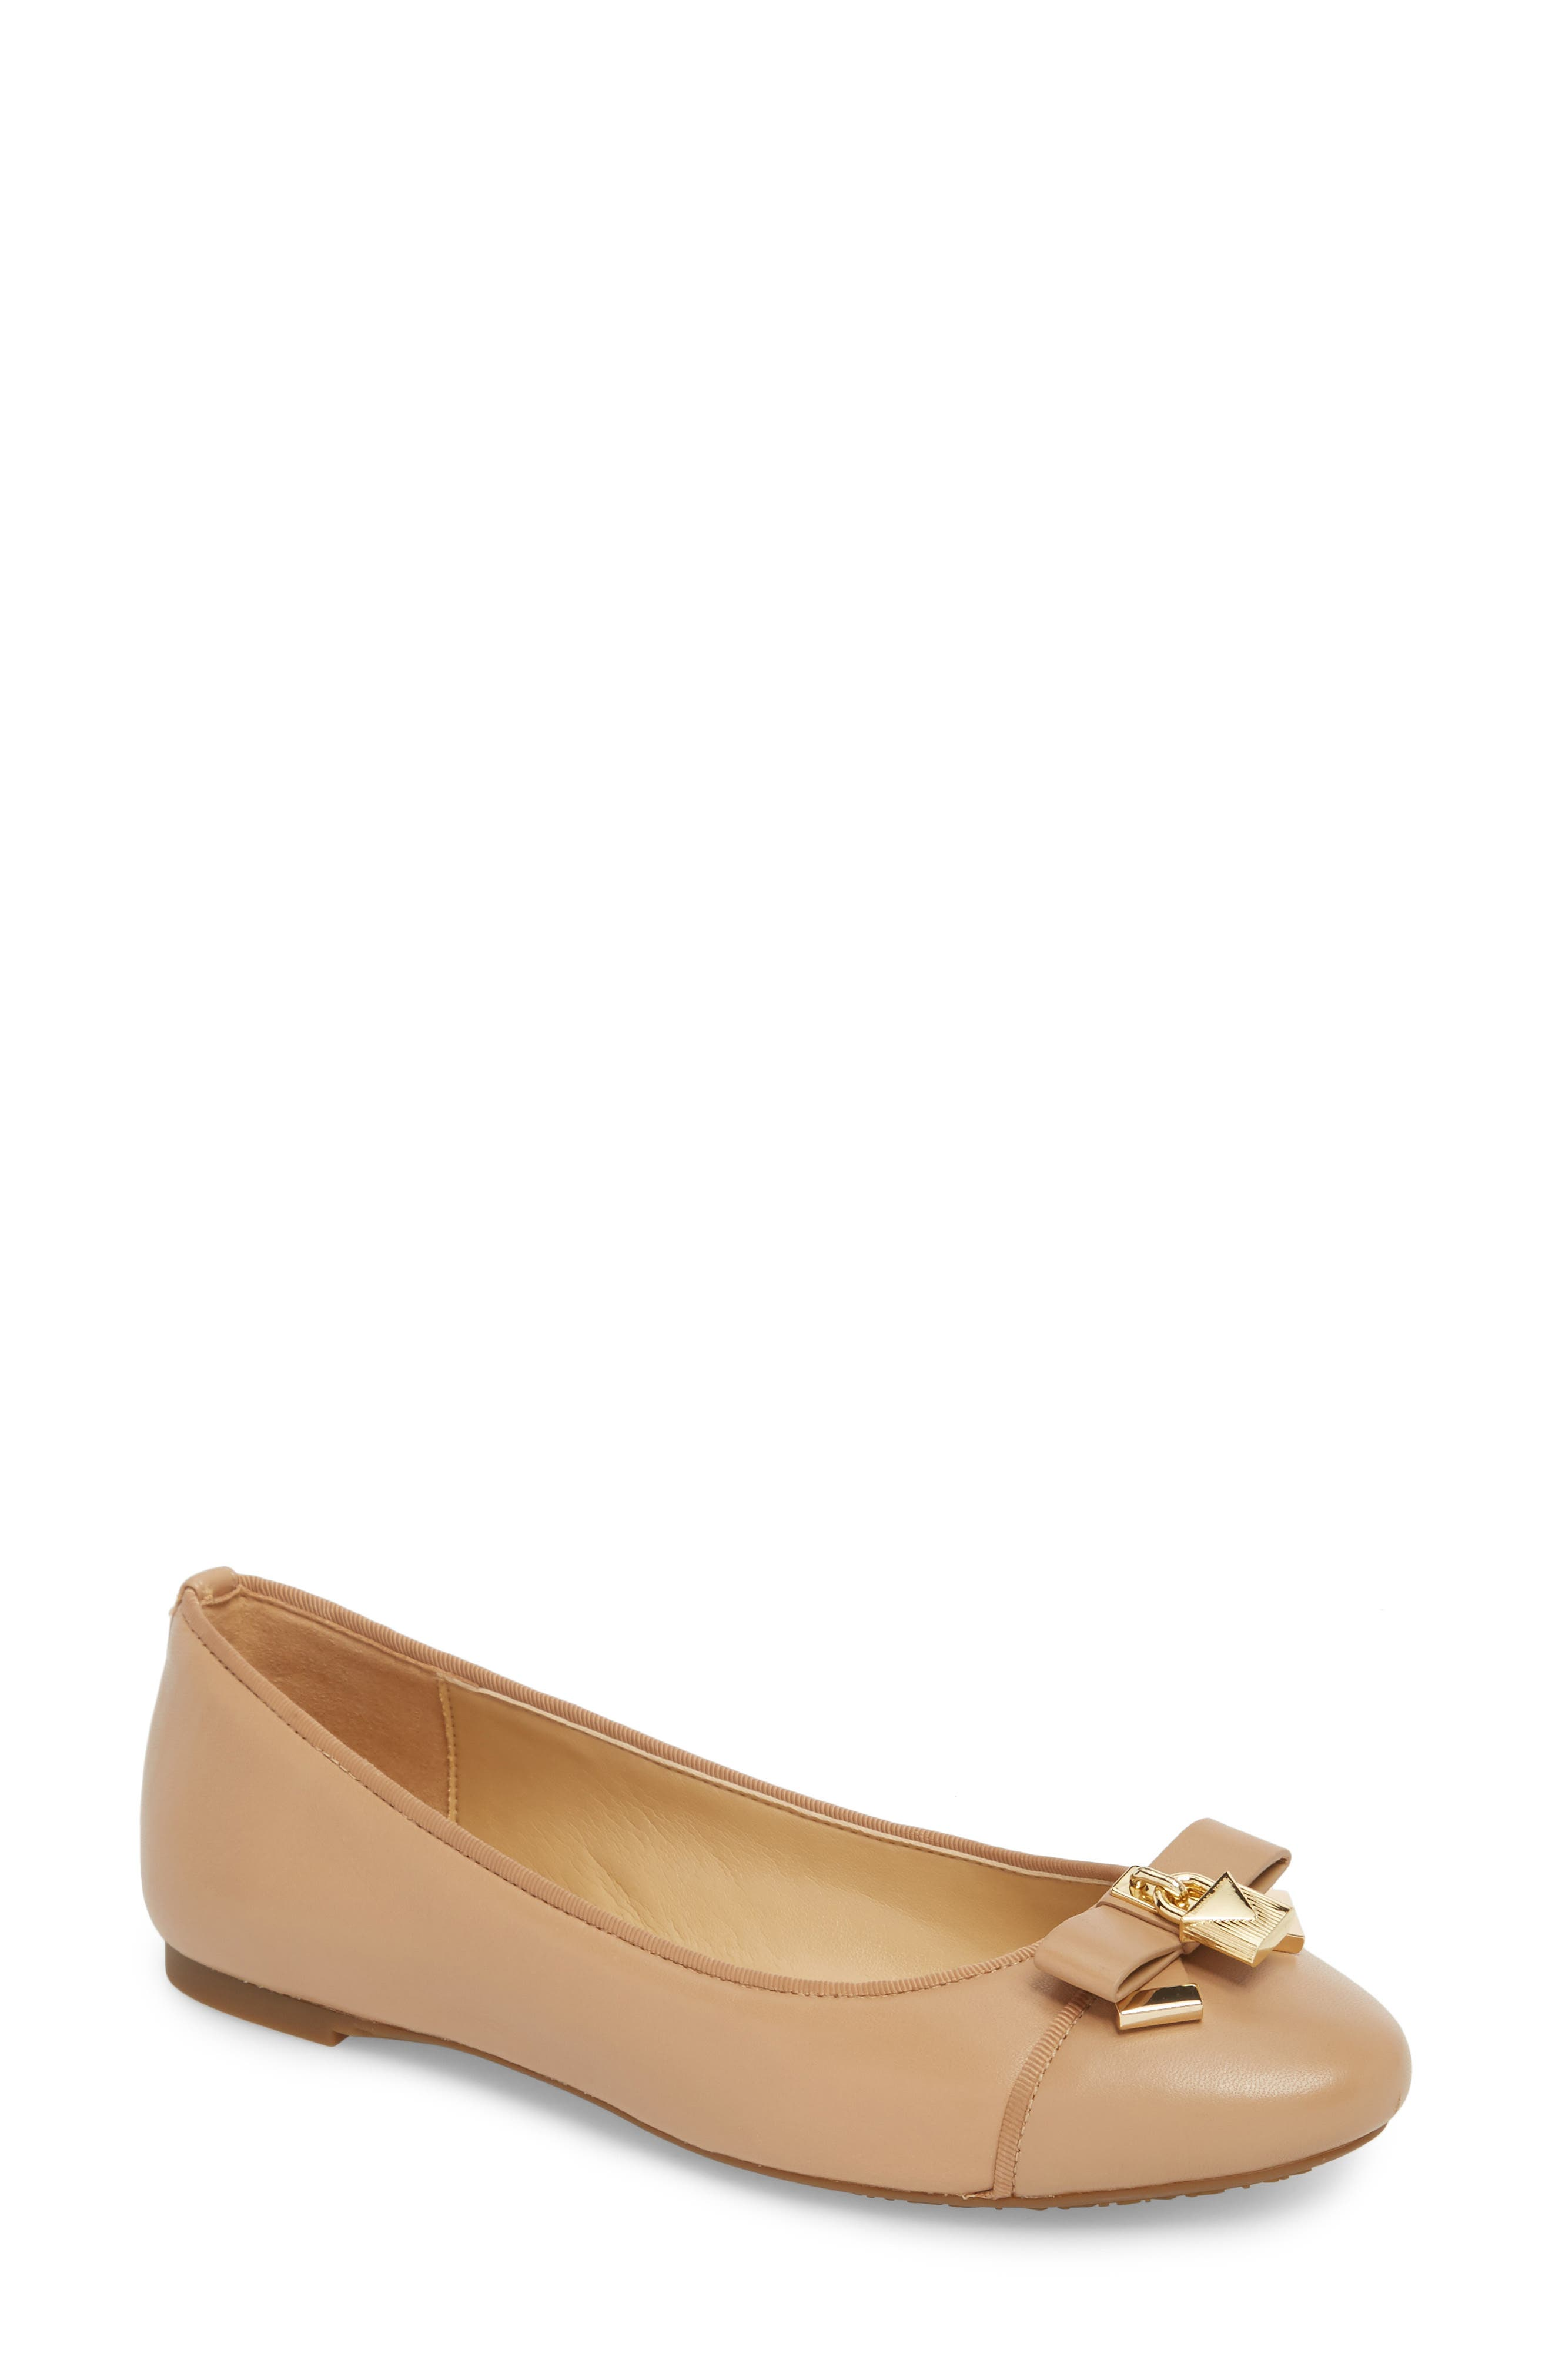 Alice Ballet Flat,                             Main thumbnail 1, color,                             Toffee Leather